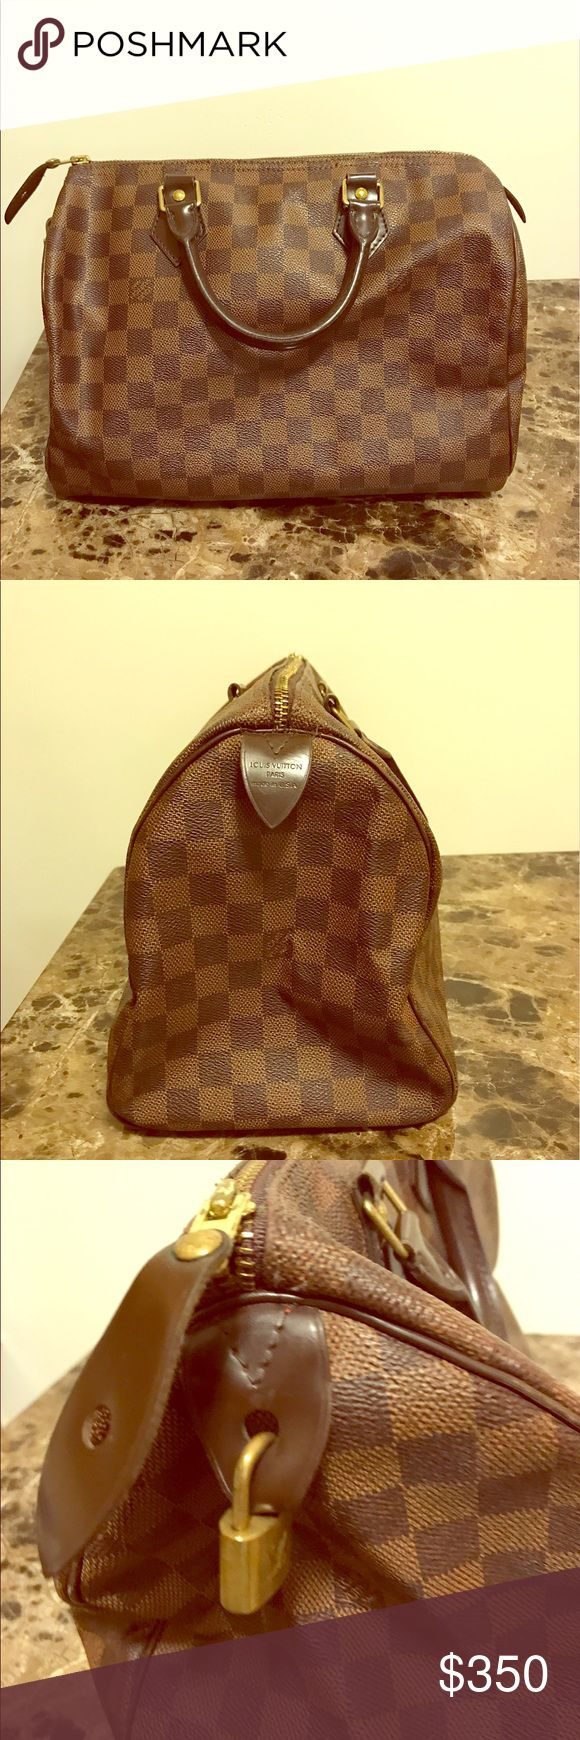 Louis Vuitton Speedy 30 Damier purse Brown checkered Damier bag AUTHENTIC. purchased in 2011 Louis Vuitton Bags Mini Bags